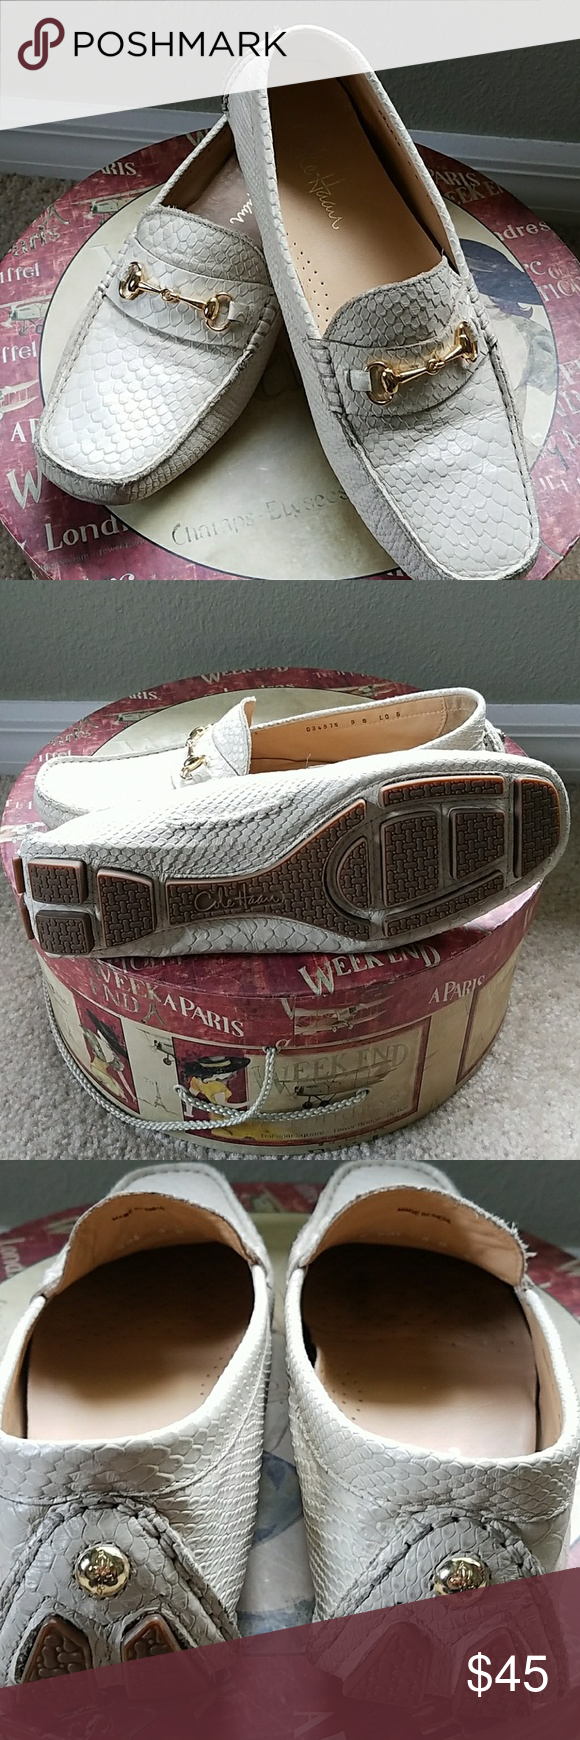 Beautiful Cole Haan loafers Great condition, gold hardware clean, classy and comfortable! Cole Haan Shoes Flats & Loafers